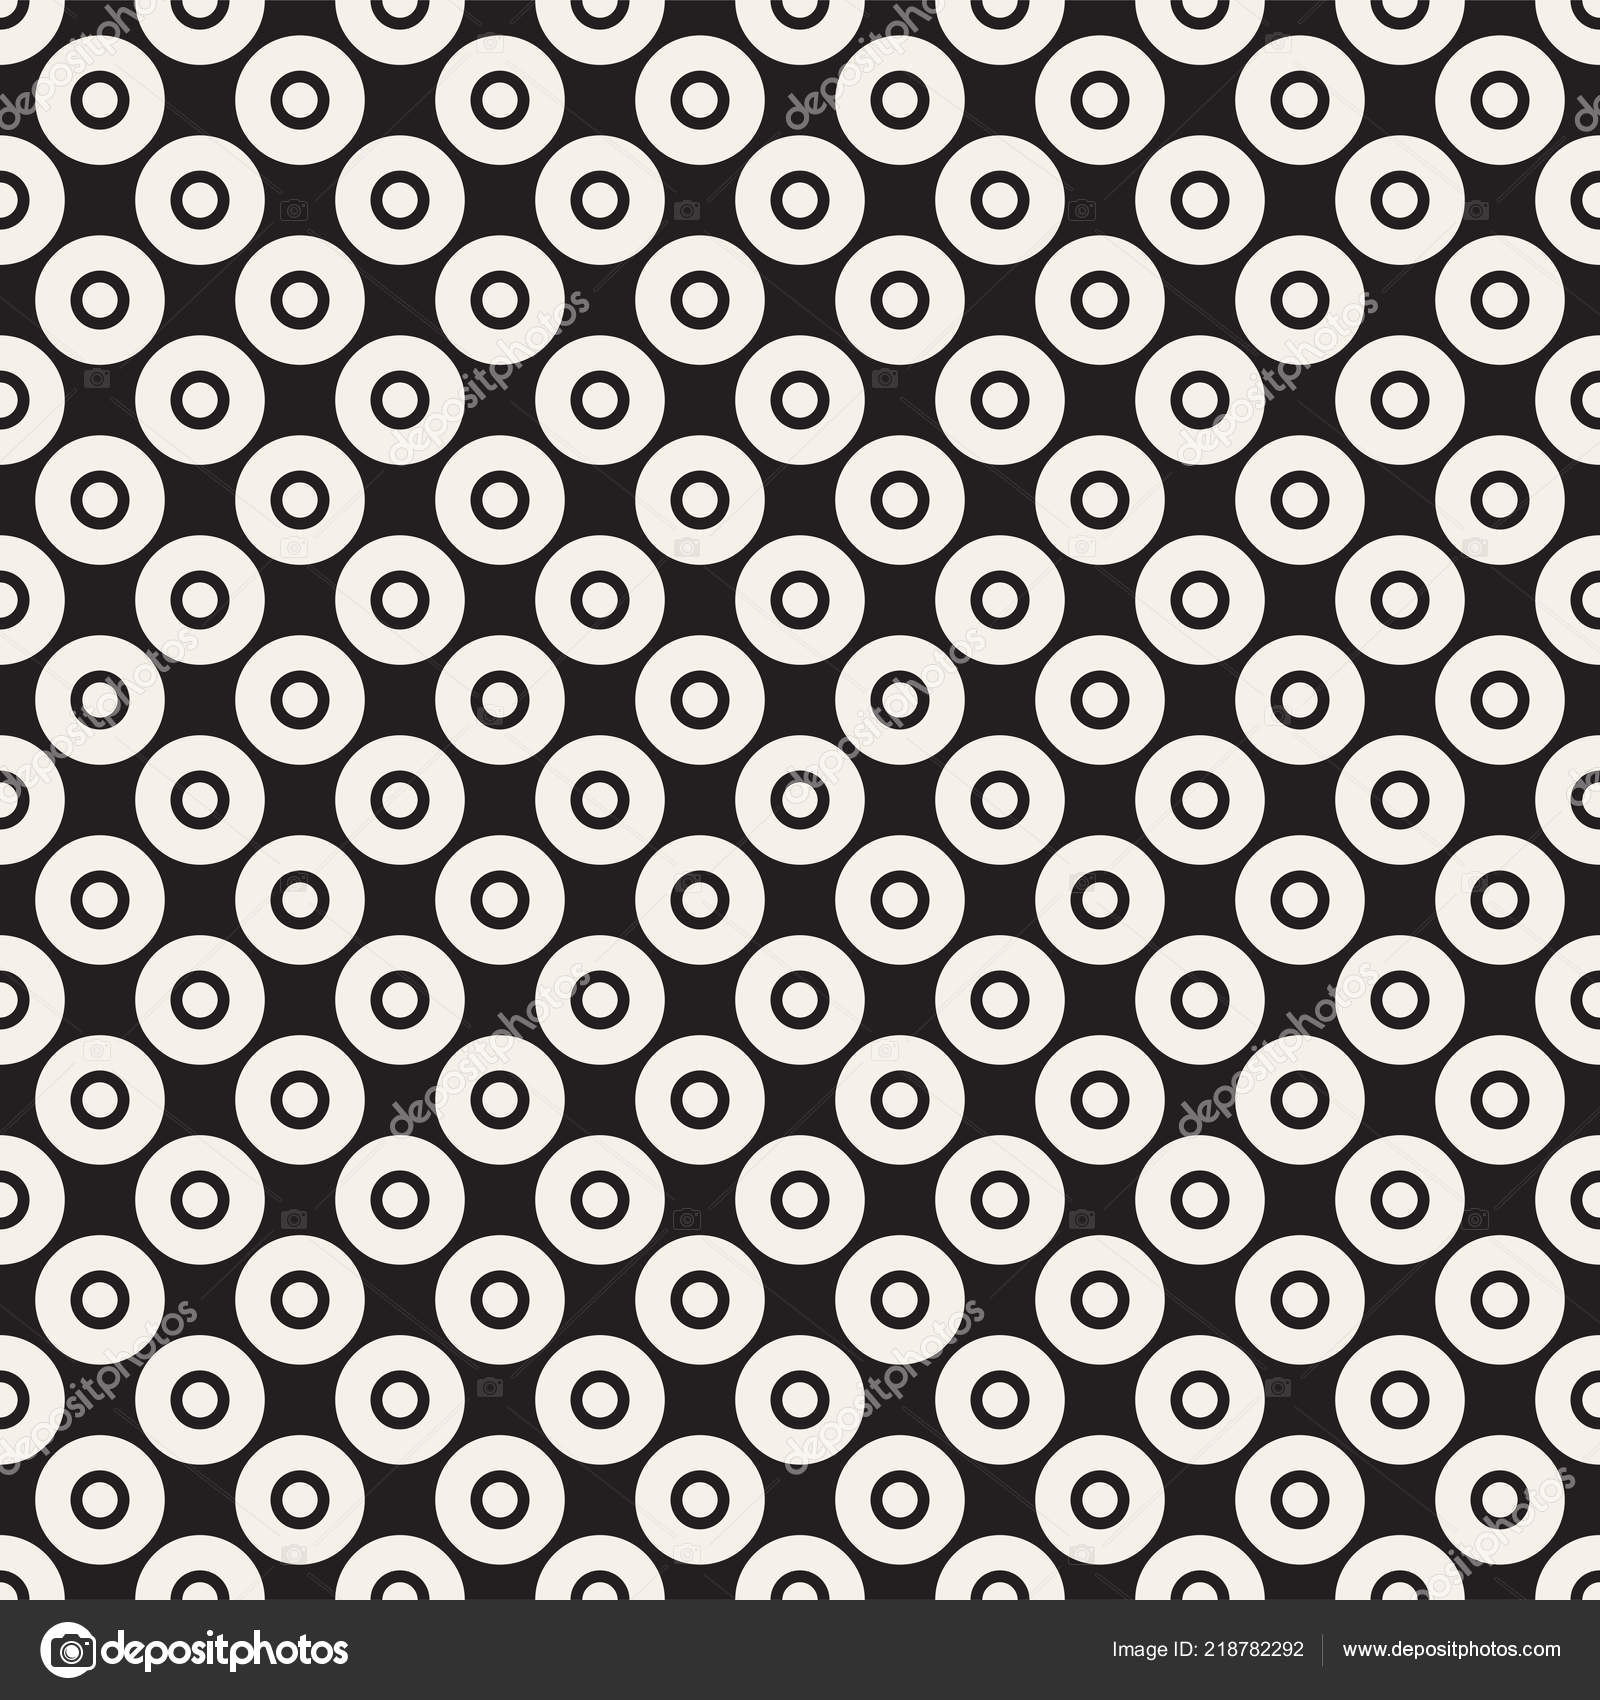 vector seamless pattern circles rings simple modern abstract